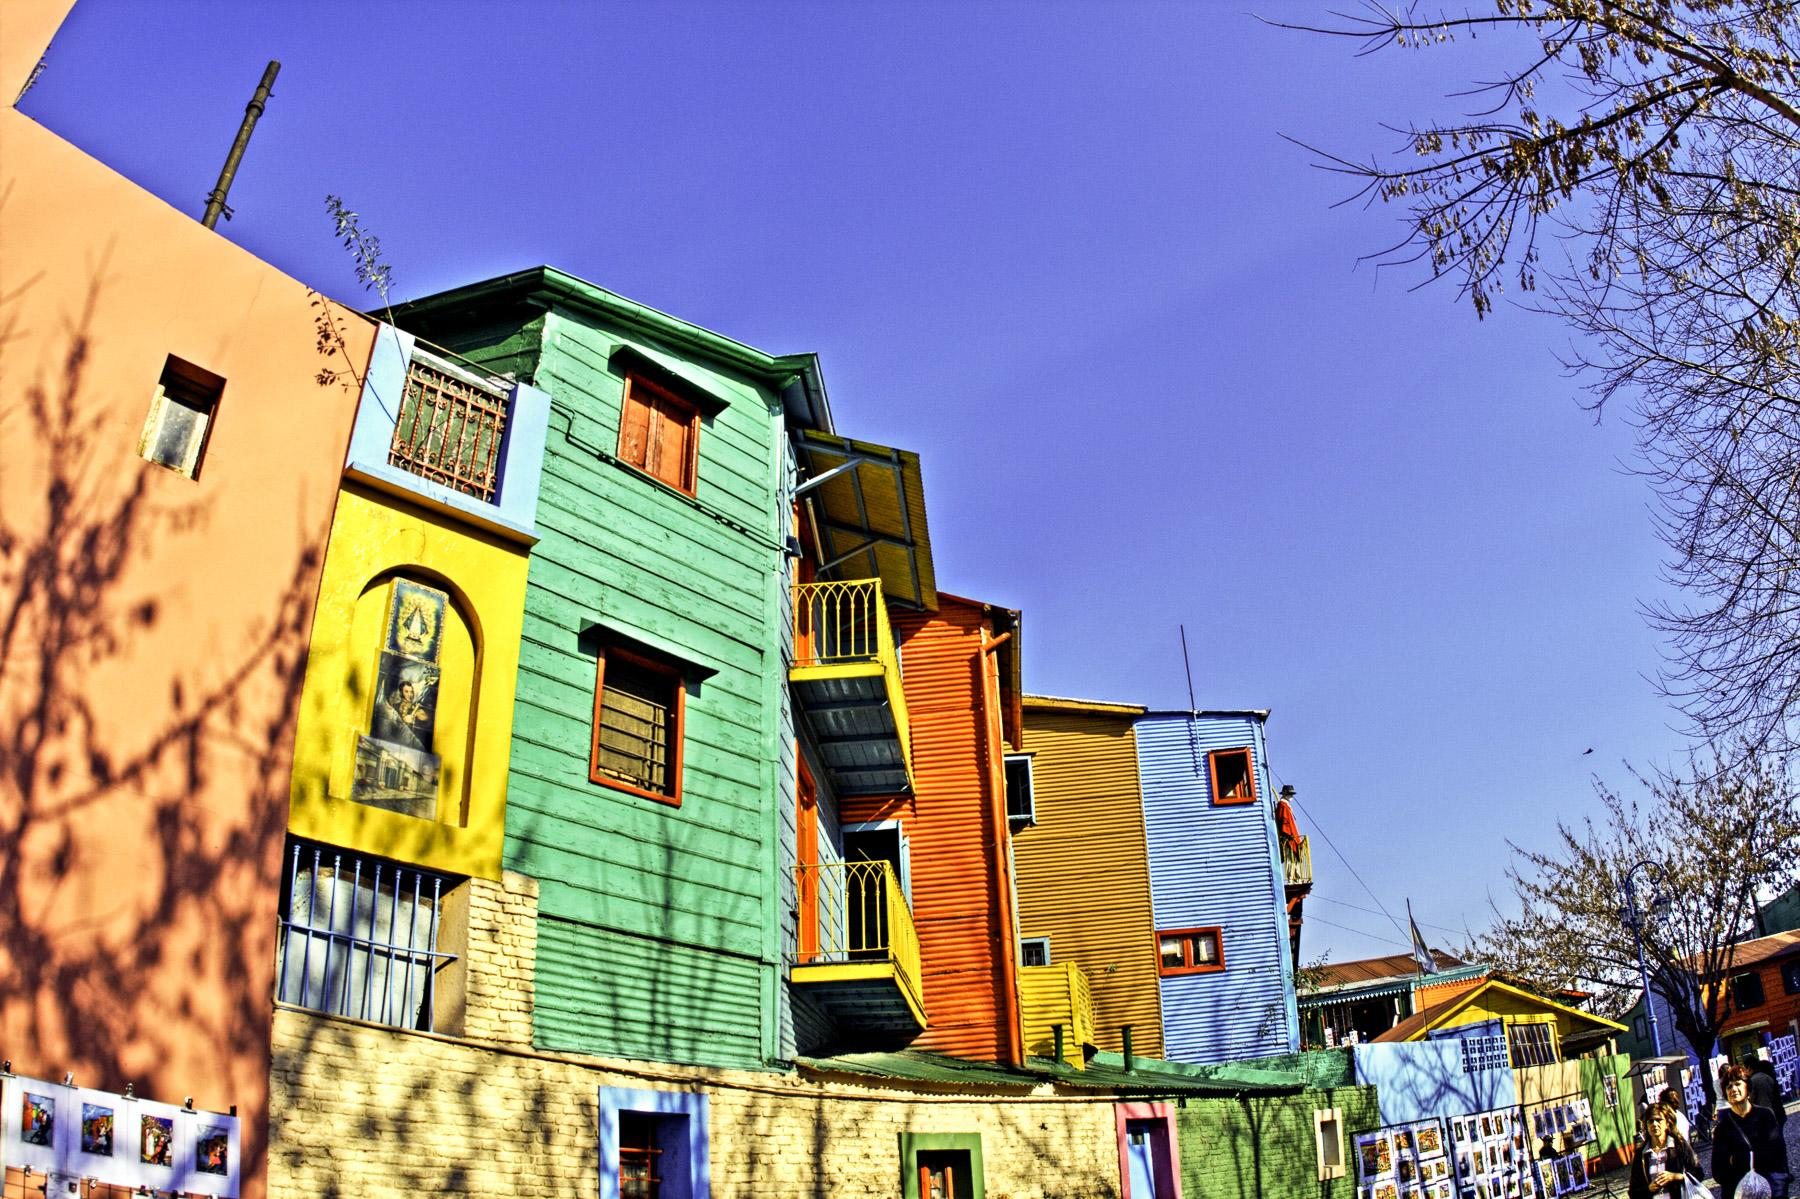 BA-Instagrammable-Neighborhood-La-Boca-10